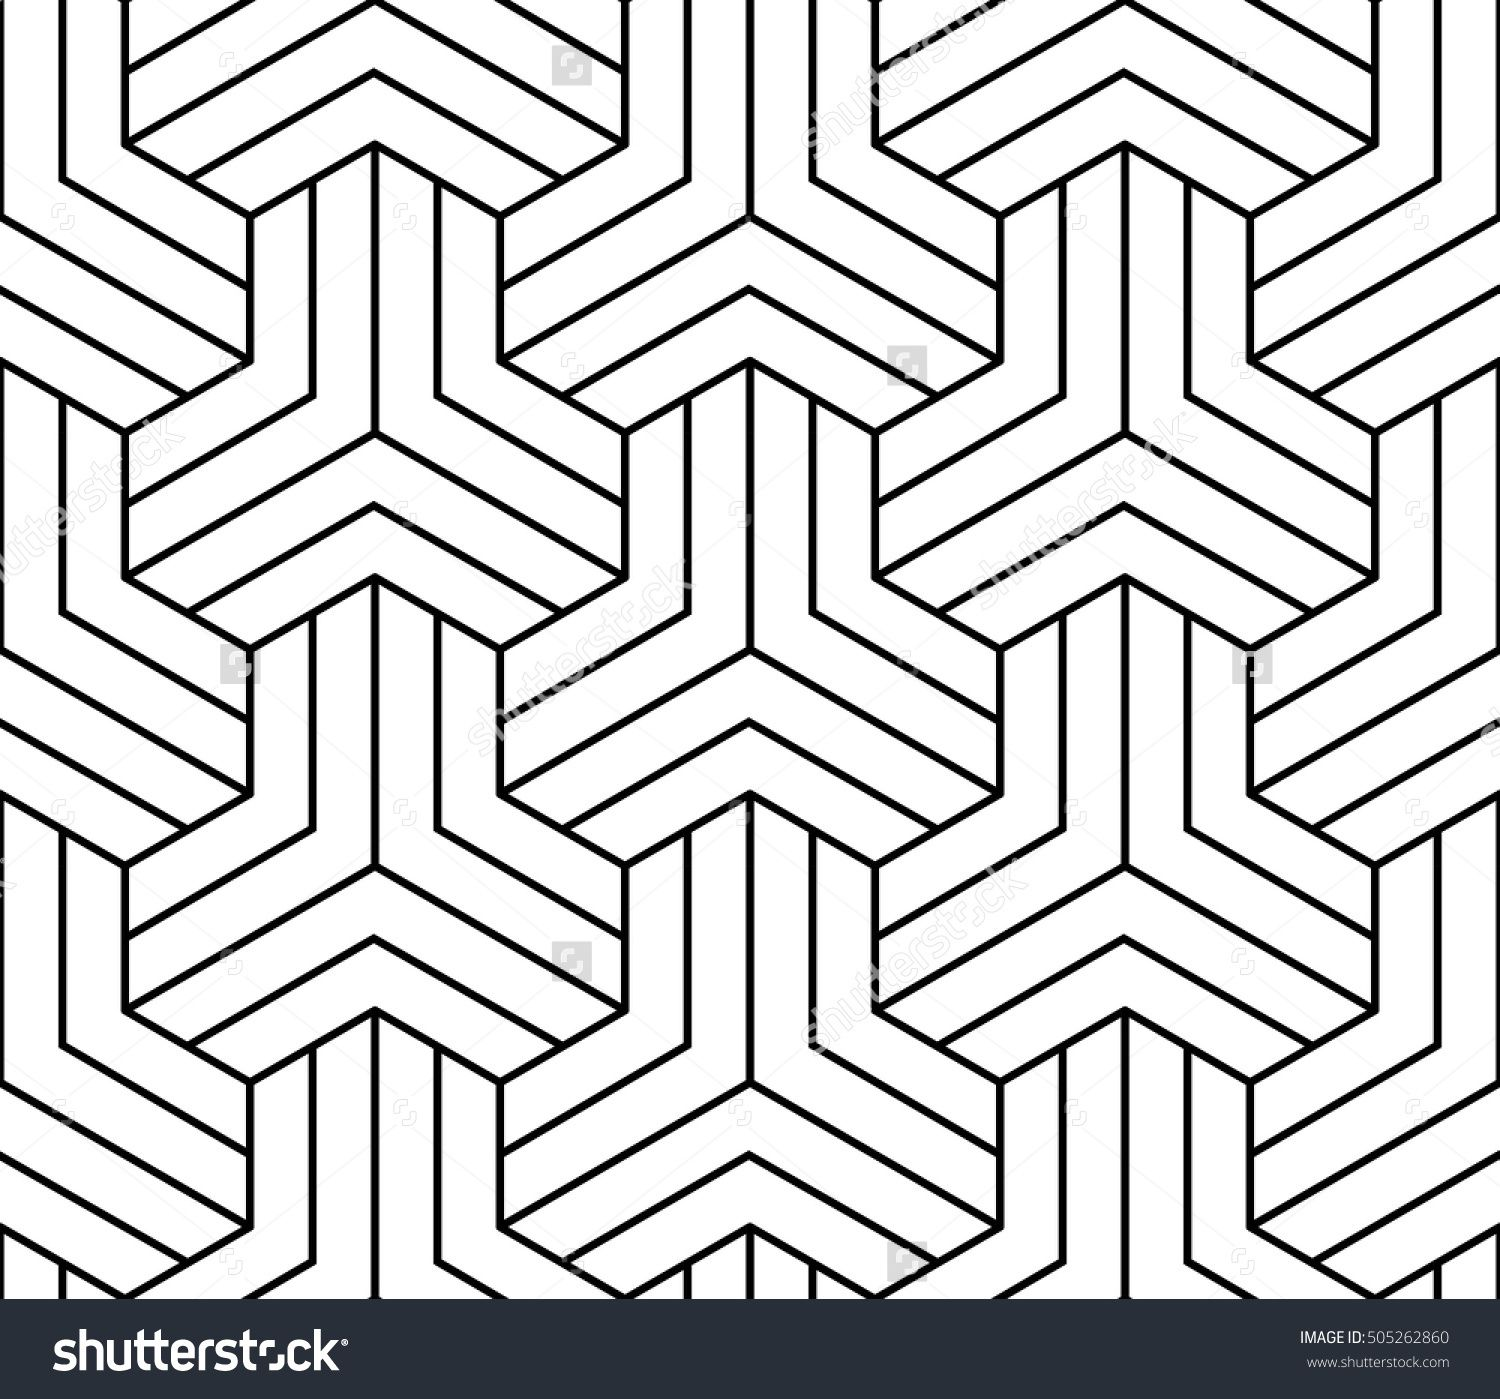 Abstract geometric illusion black and white graphic design print pattern